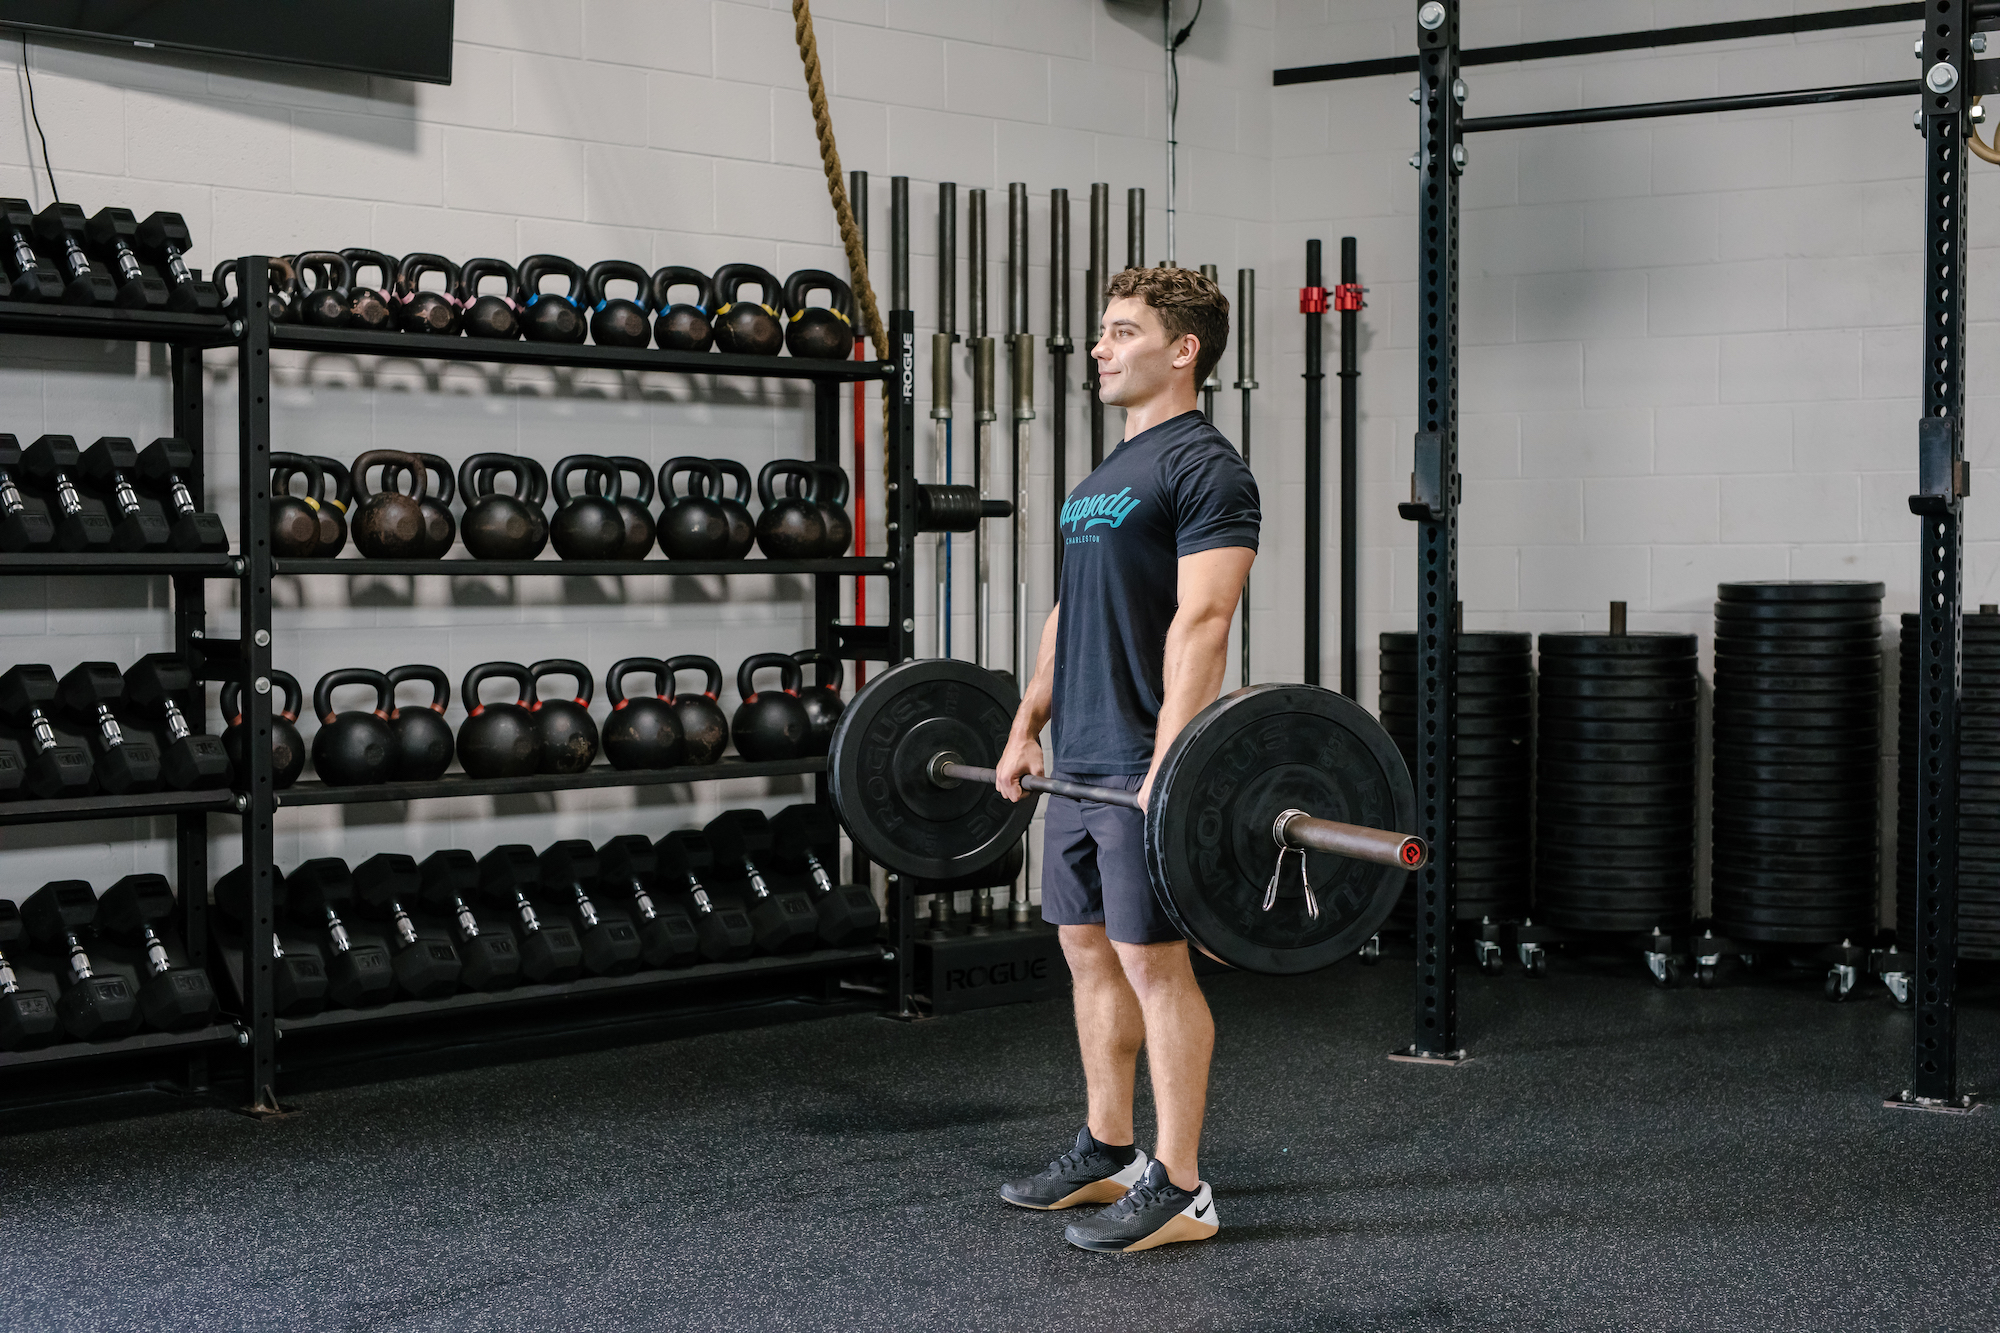 Points of Performance: The Deadlift